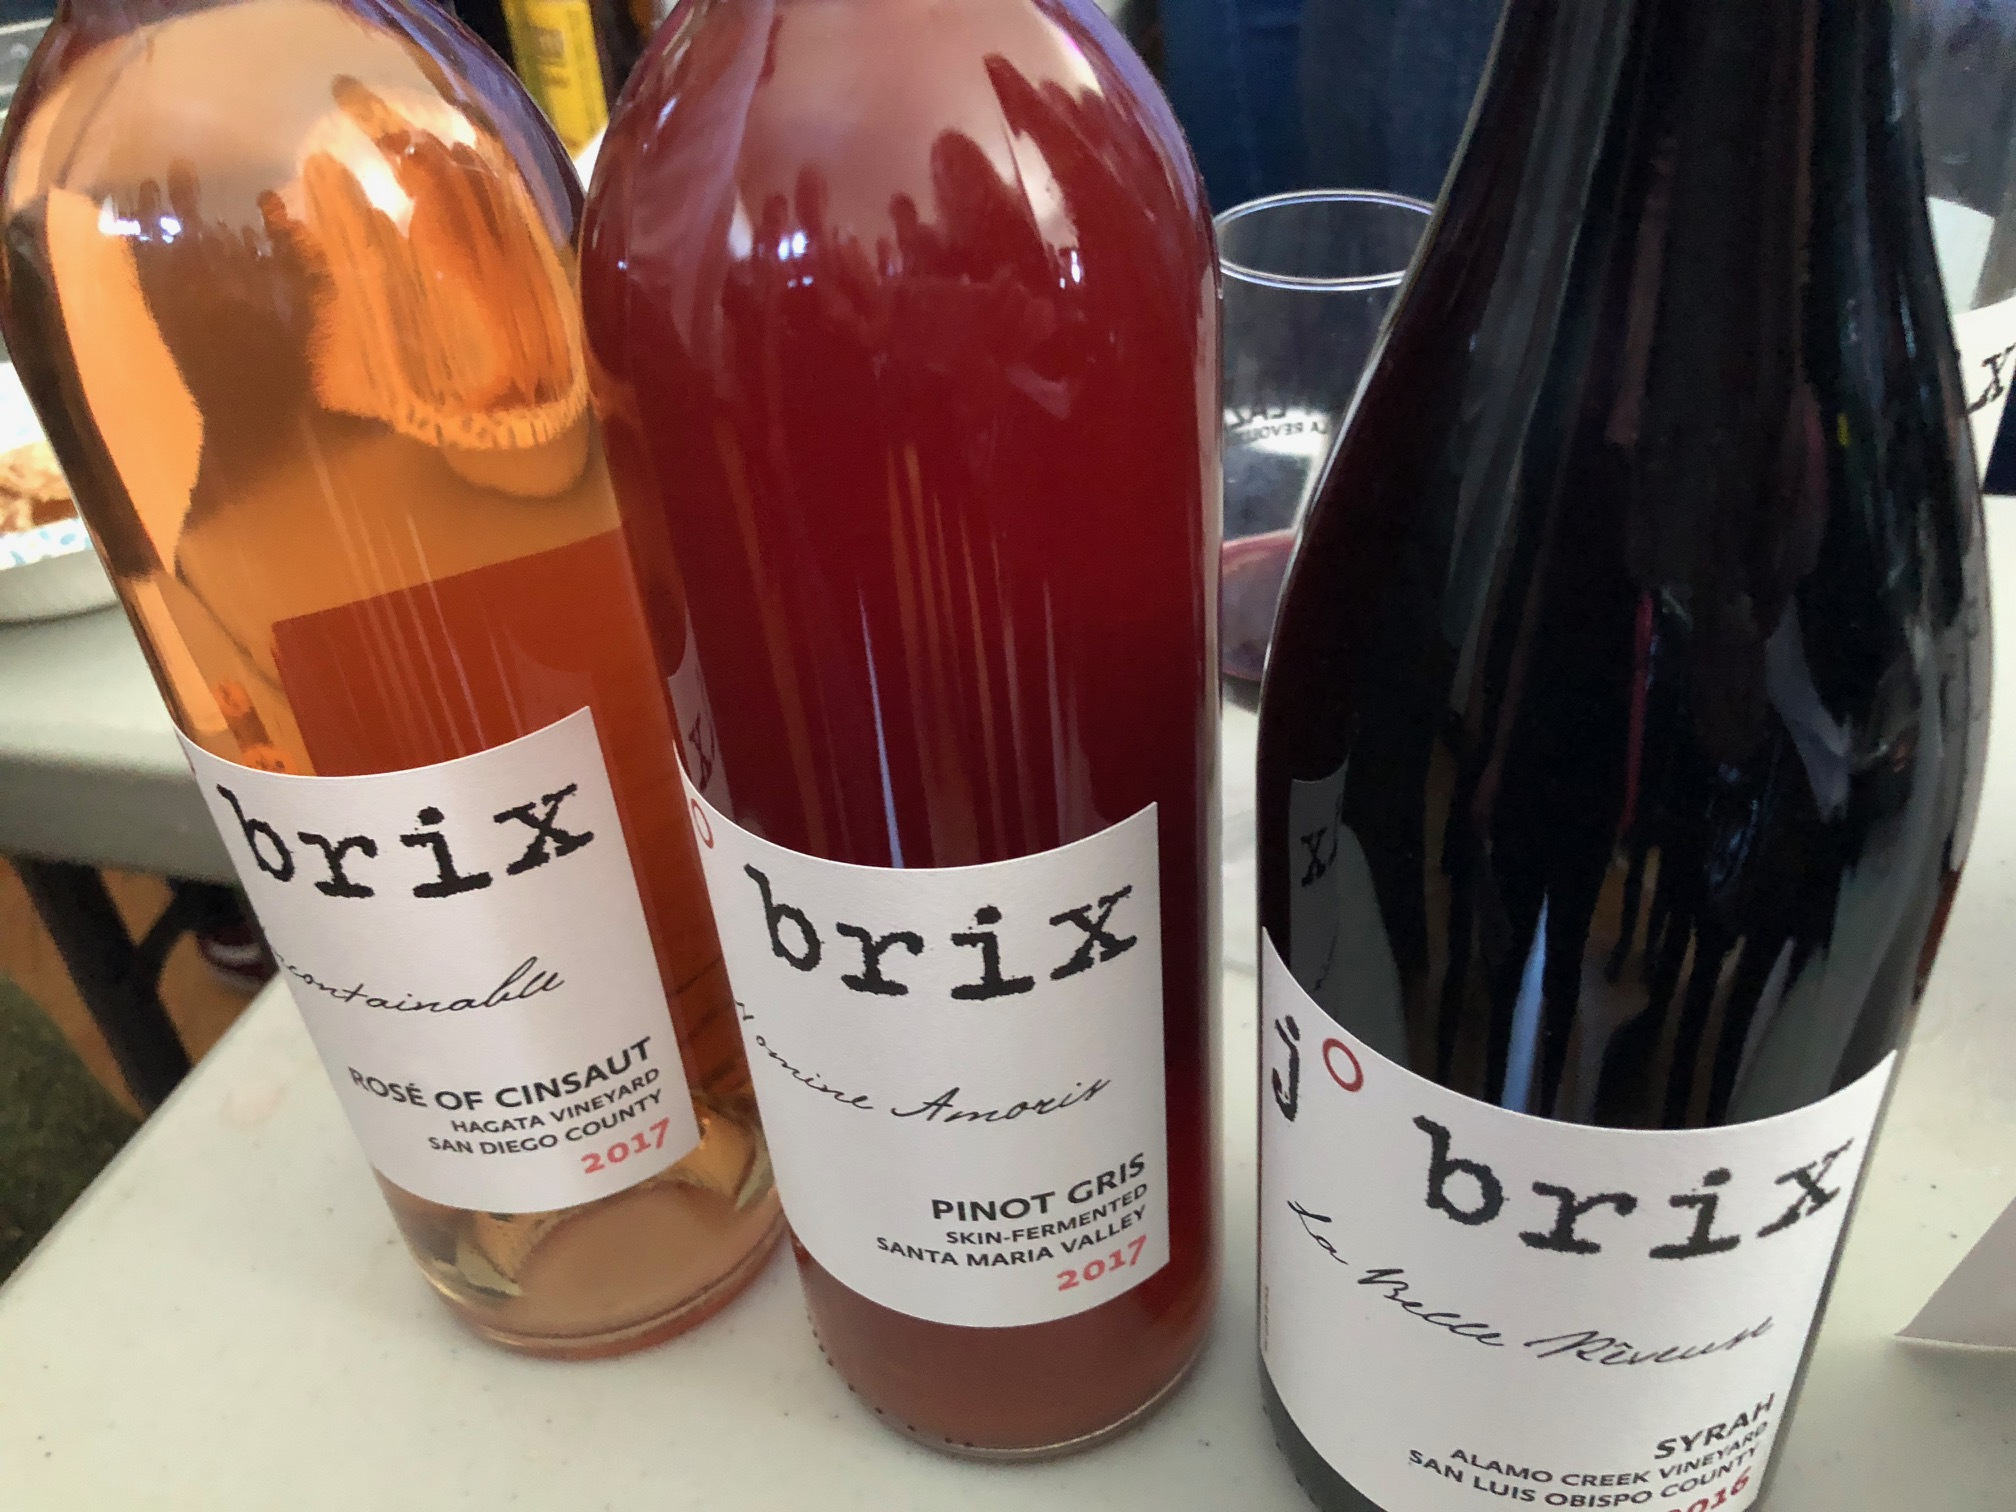 j brix - Brumaire in Oakland, CA March 2018, Husband and wife team, Jody Brix Towe and Emily Towe make wine in Escondido, CA explaining,